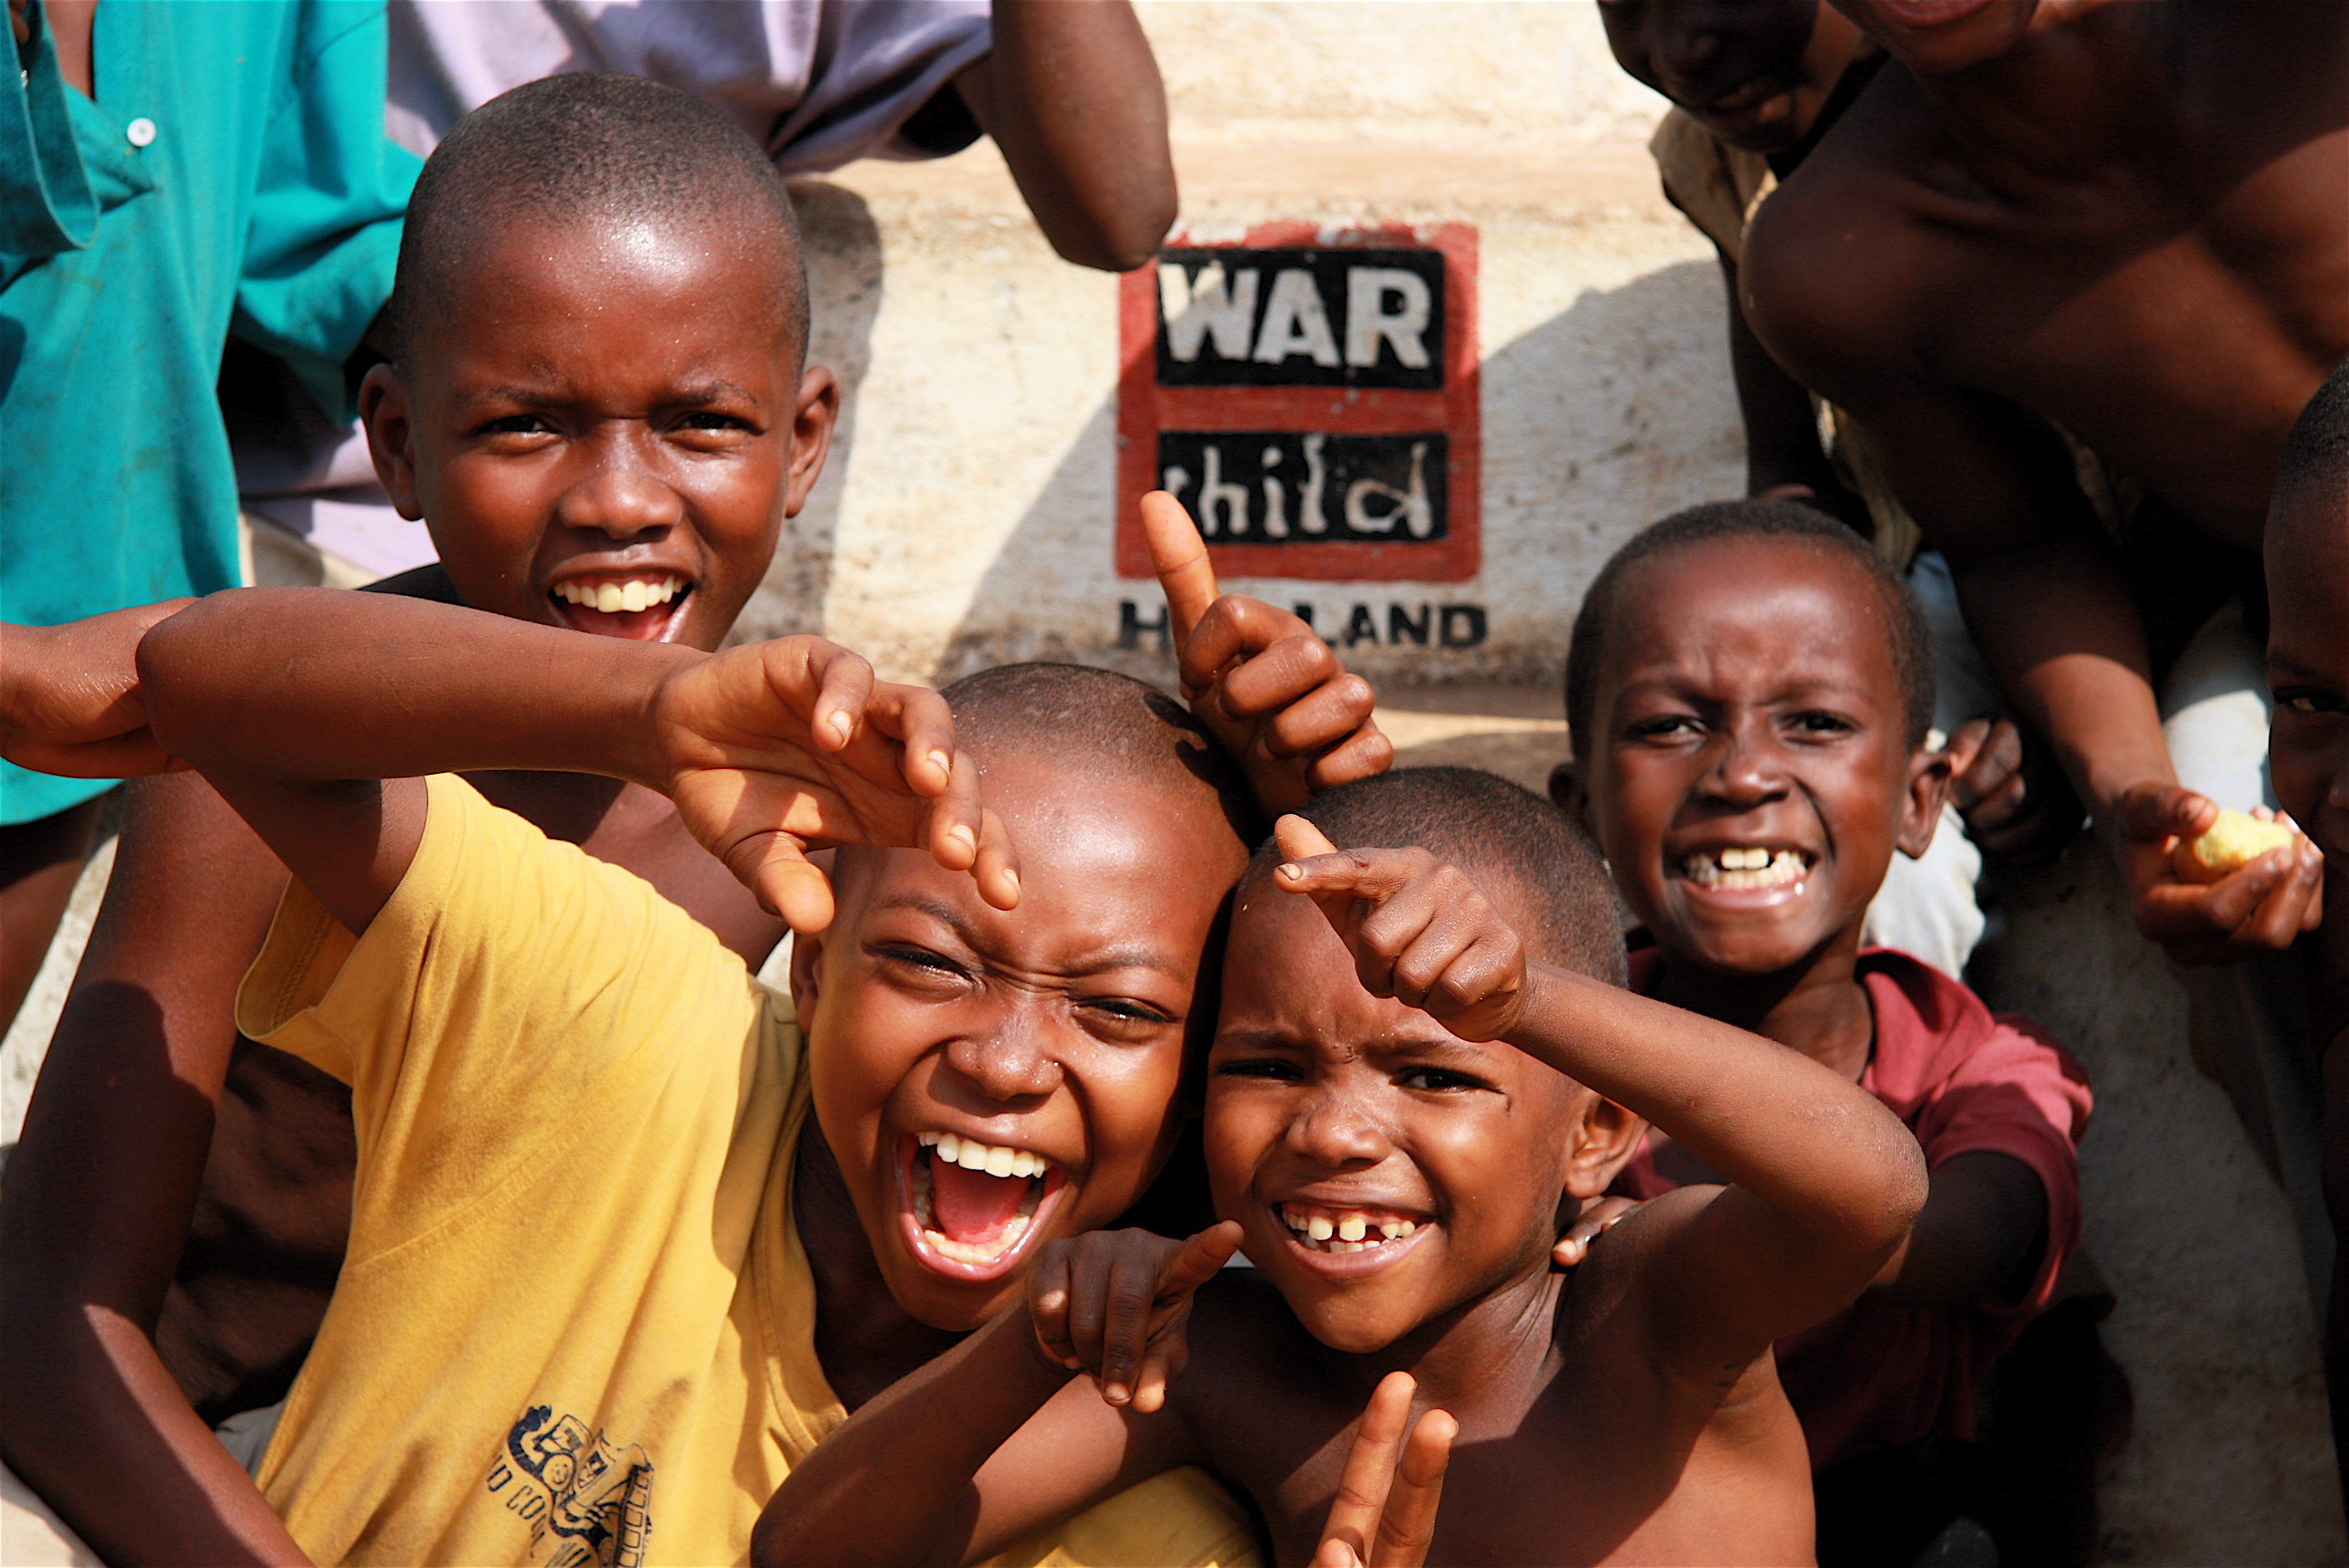 Simone Fell is fundraising for War Child